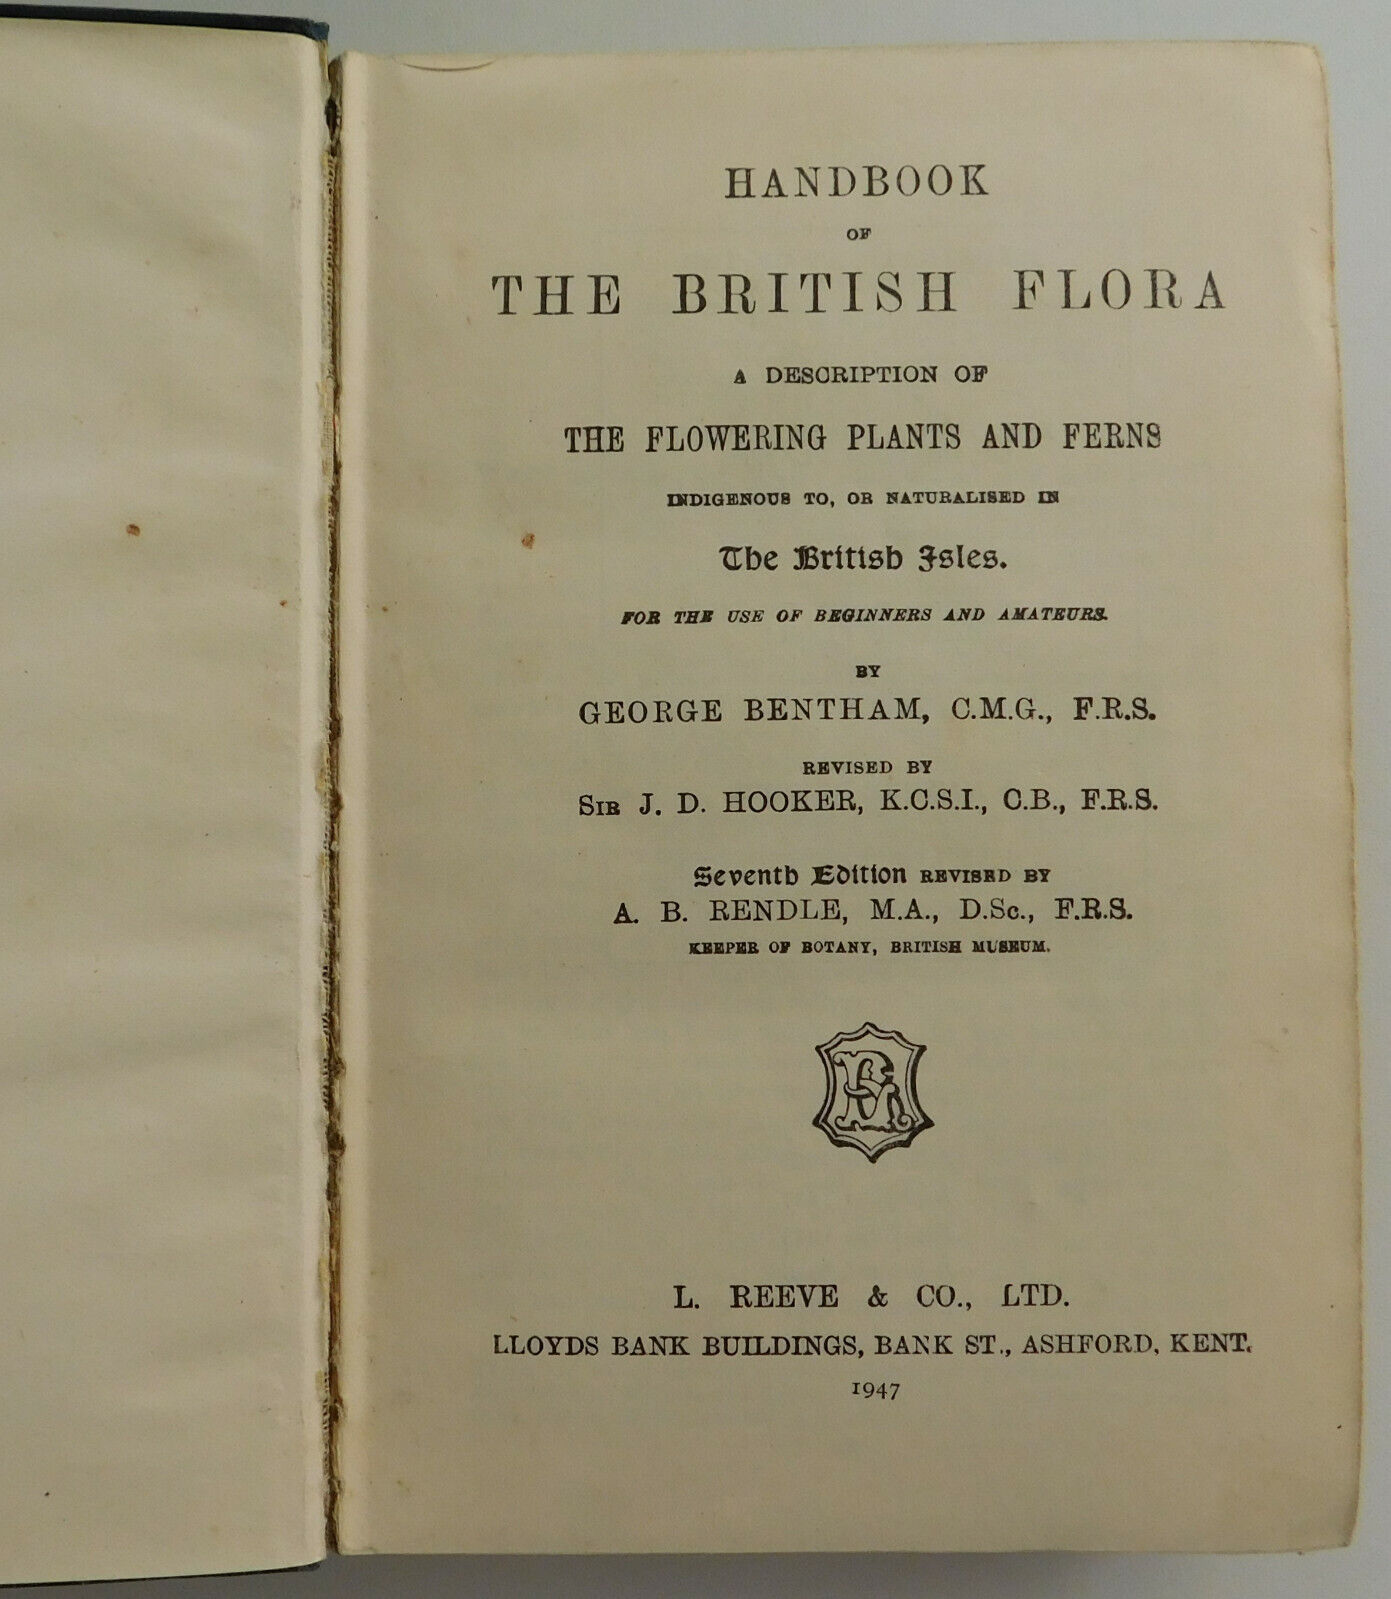 Handbook of the British Flora George Bentham book about flowers and ferns 1940s